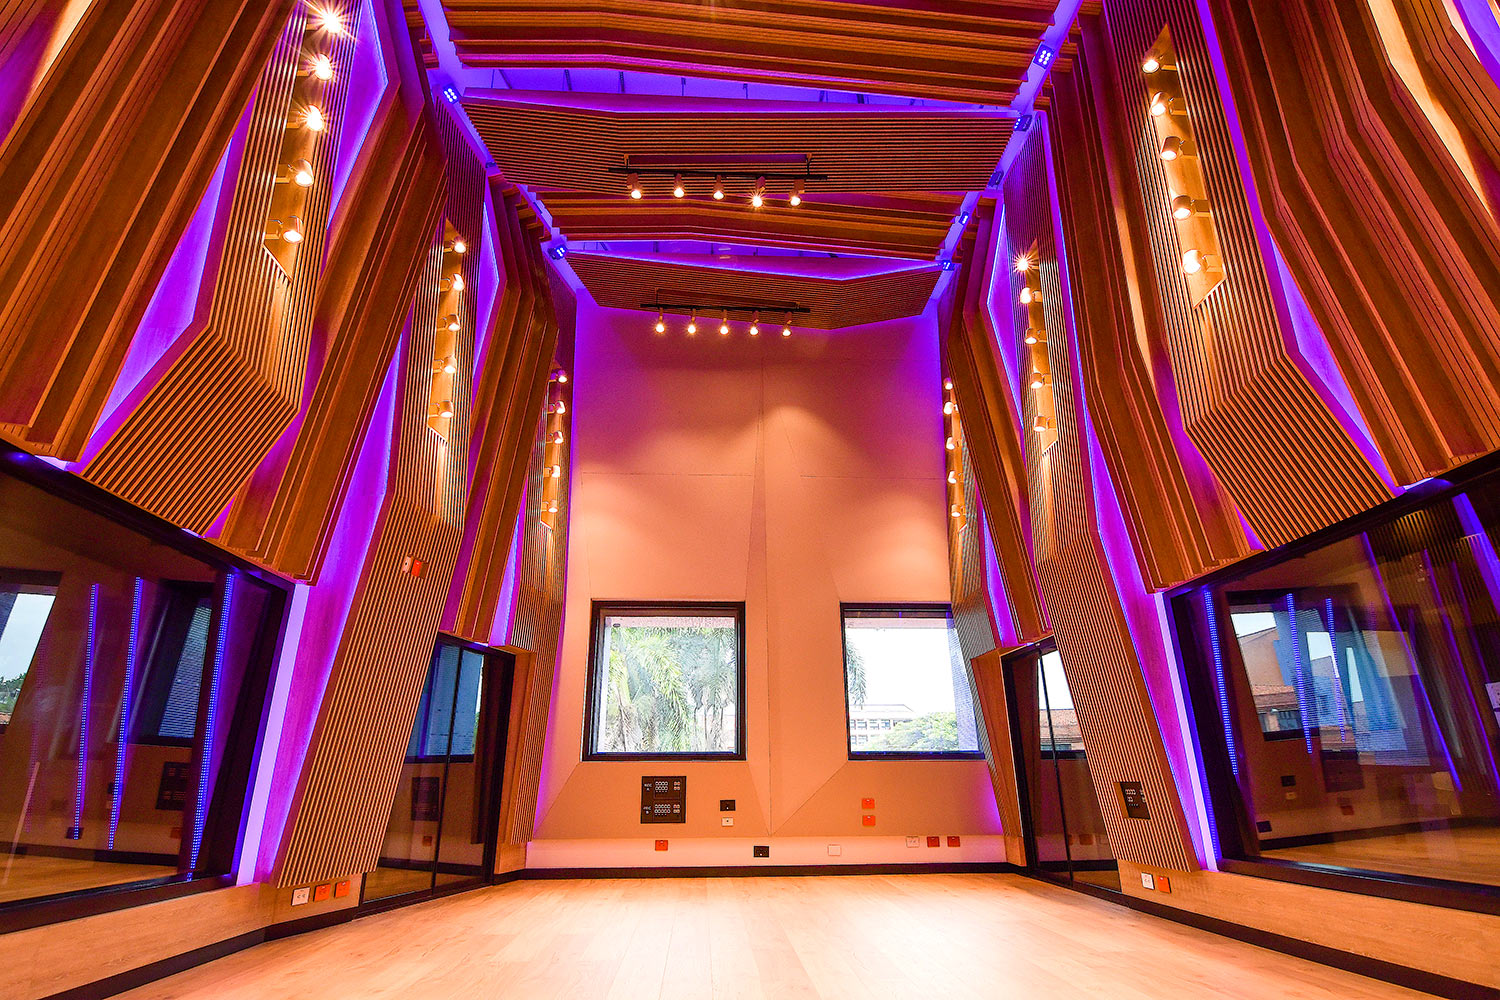 Universidad ICESI new world-class recording studio facility designed by WSDG. Double-height live room.